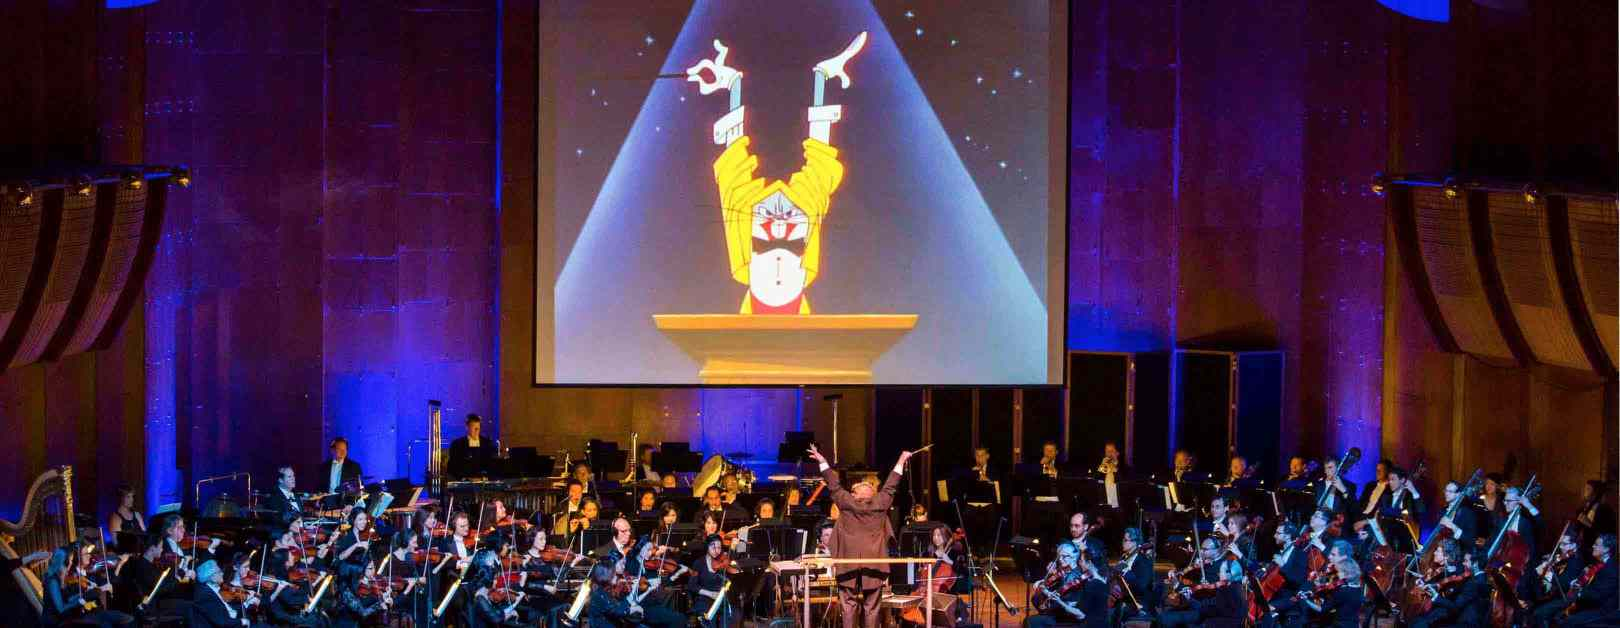 New York Philharmonic & Warner Bros. Present Bugs Bunny at the Symphony II